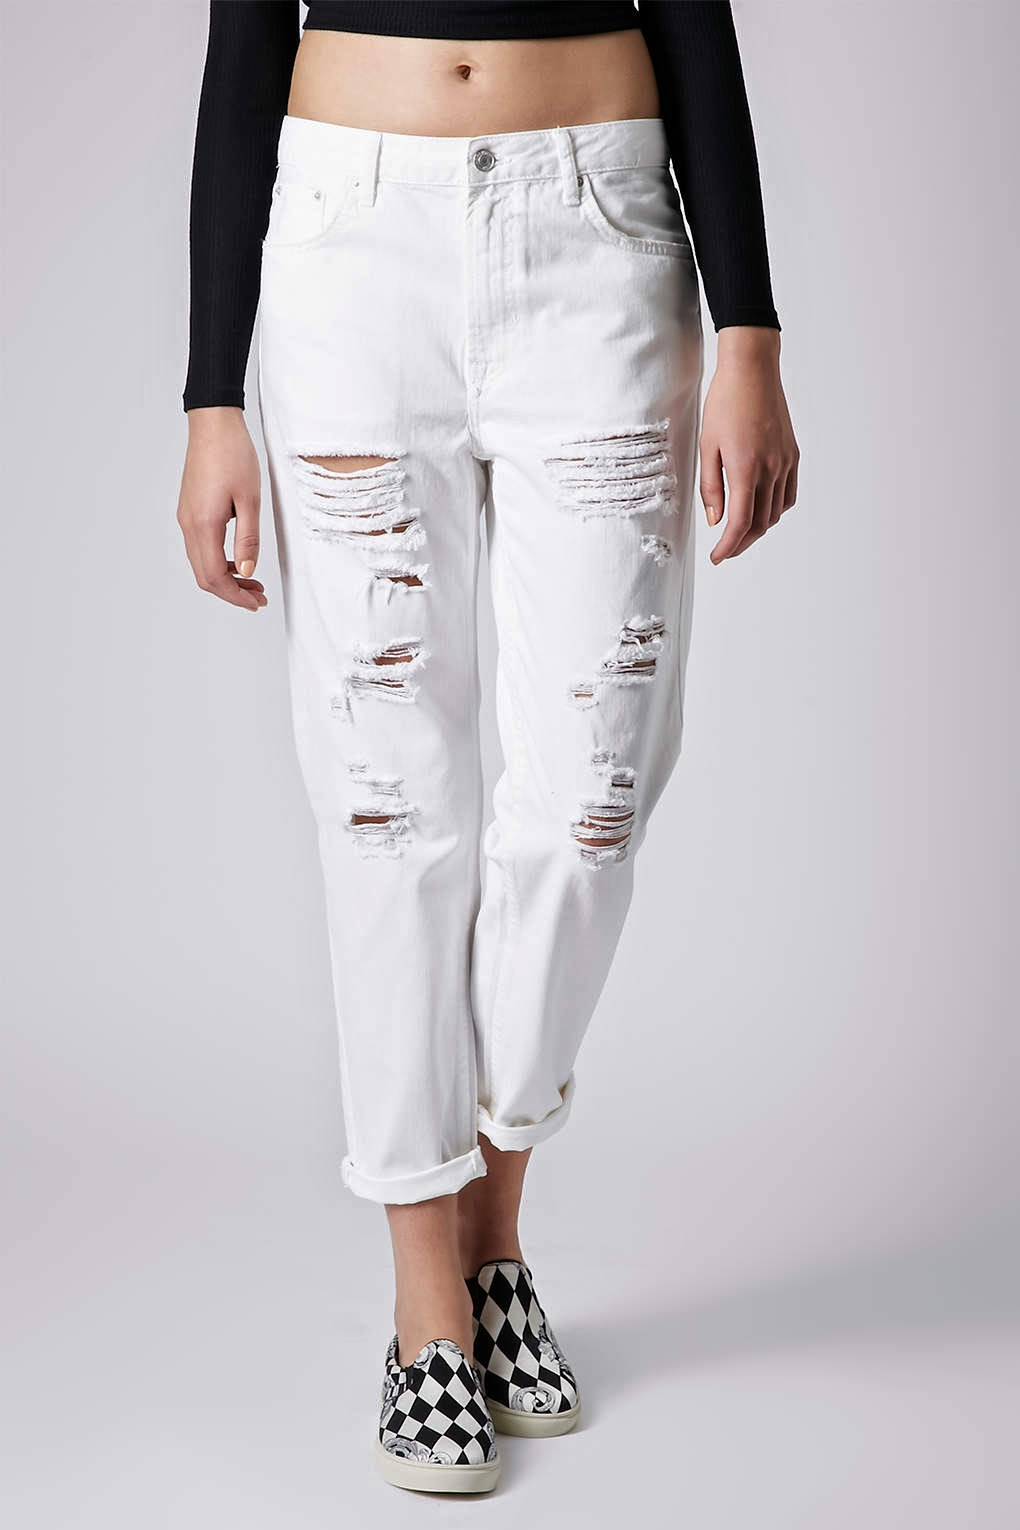 white ripped topshop jeans